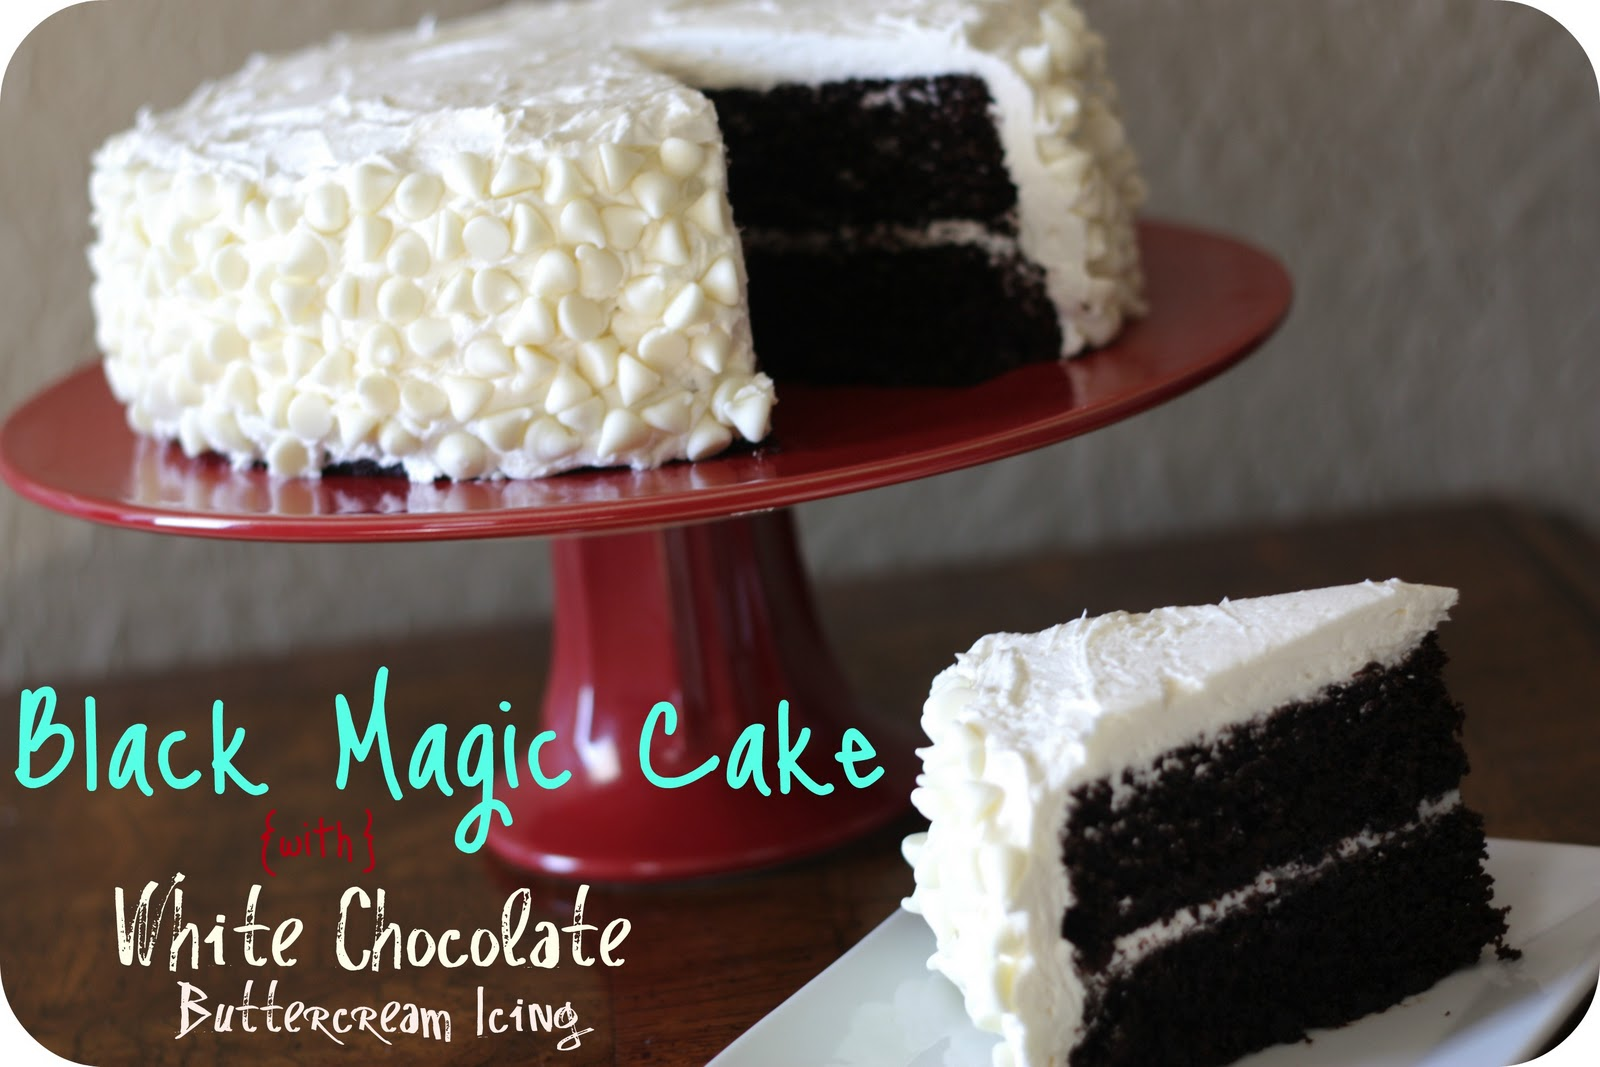 Black Magic Cake with White Chocolate Buttercream Icing | The Crunchy ...